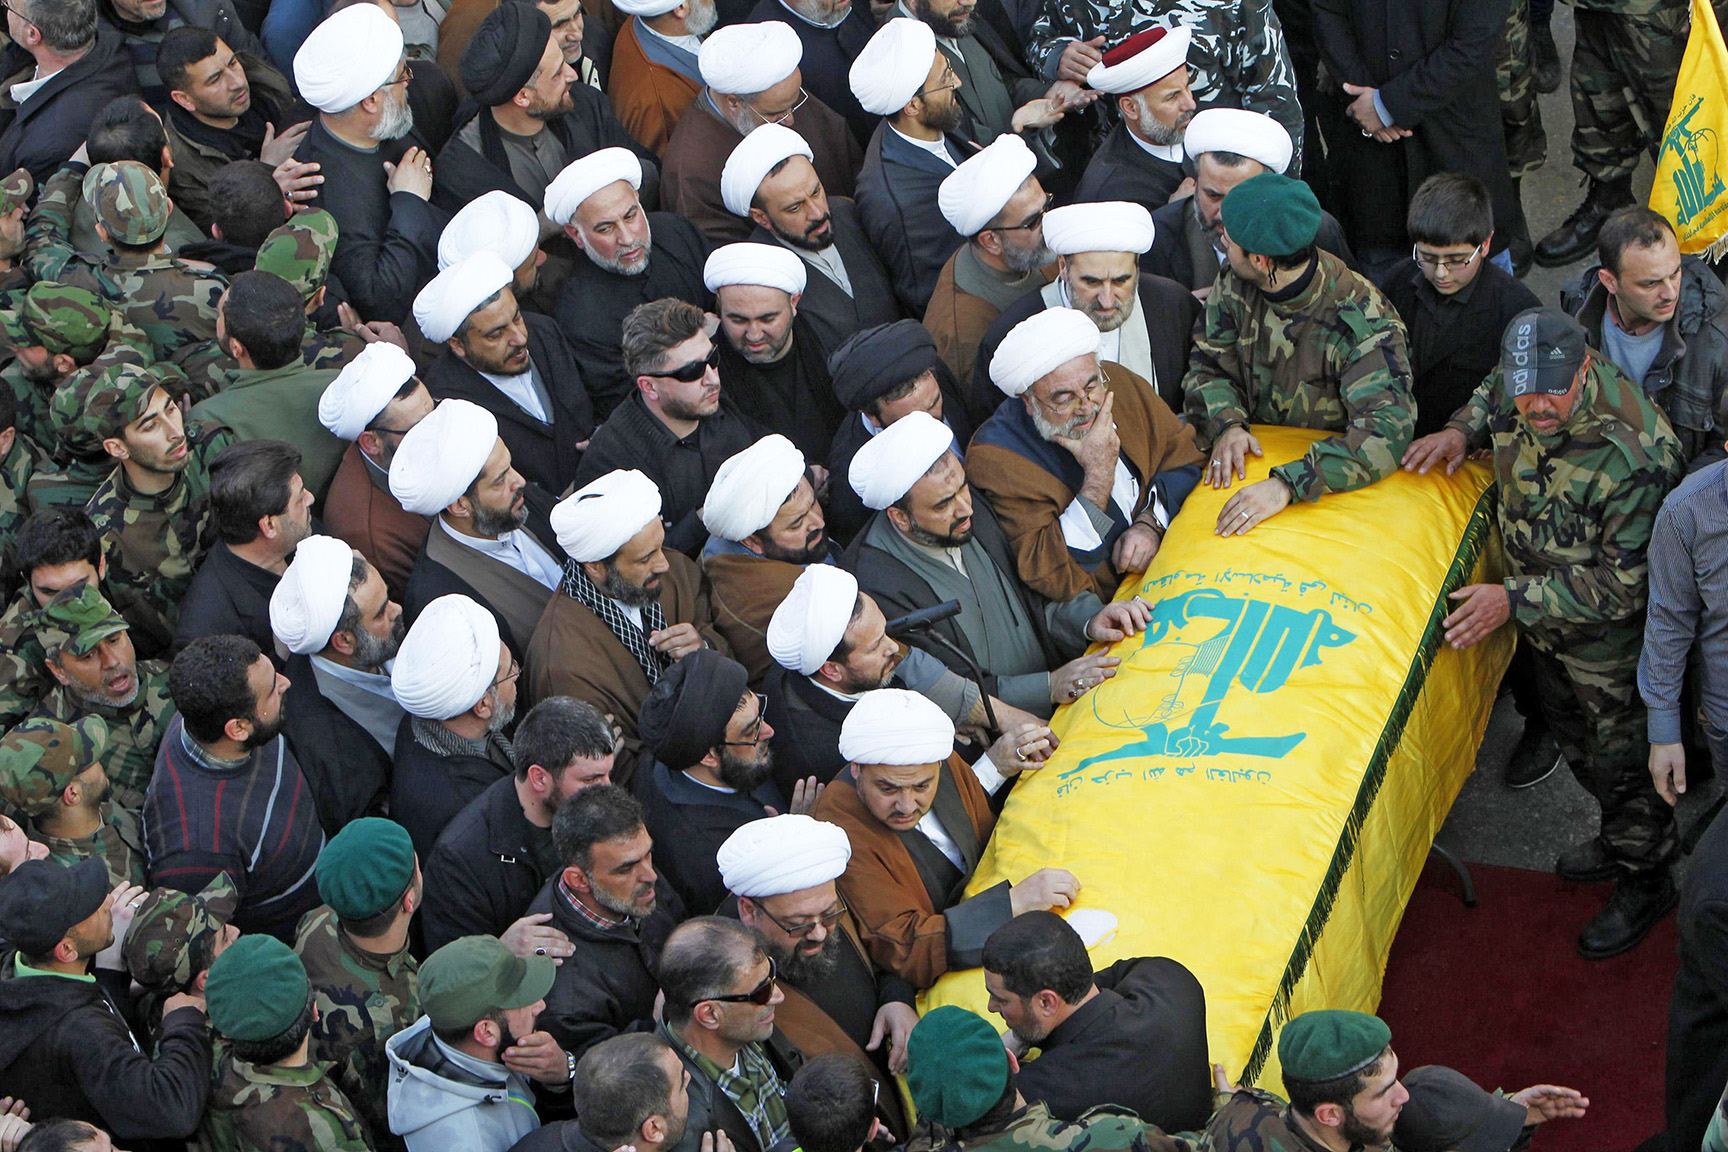 Religious figures along with Hezbollah members and supporters mourn over the coffin of Lebanon's Hezbollah commander Mohamad Issa, known as Abu Issa, during funeral in Arab-Salim